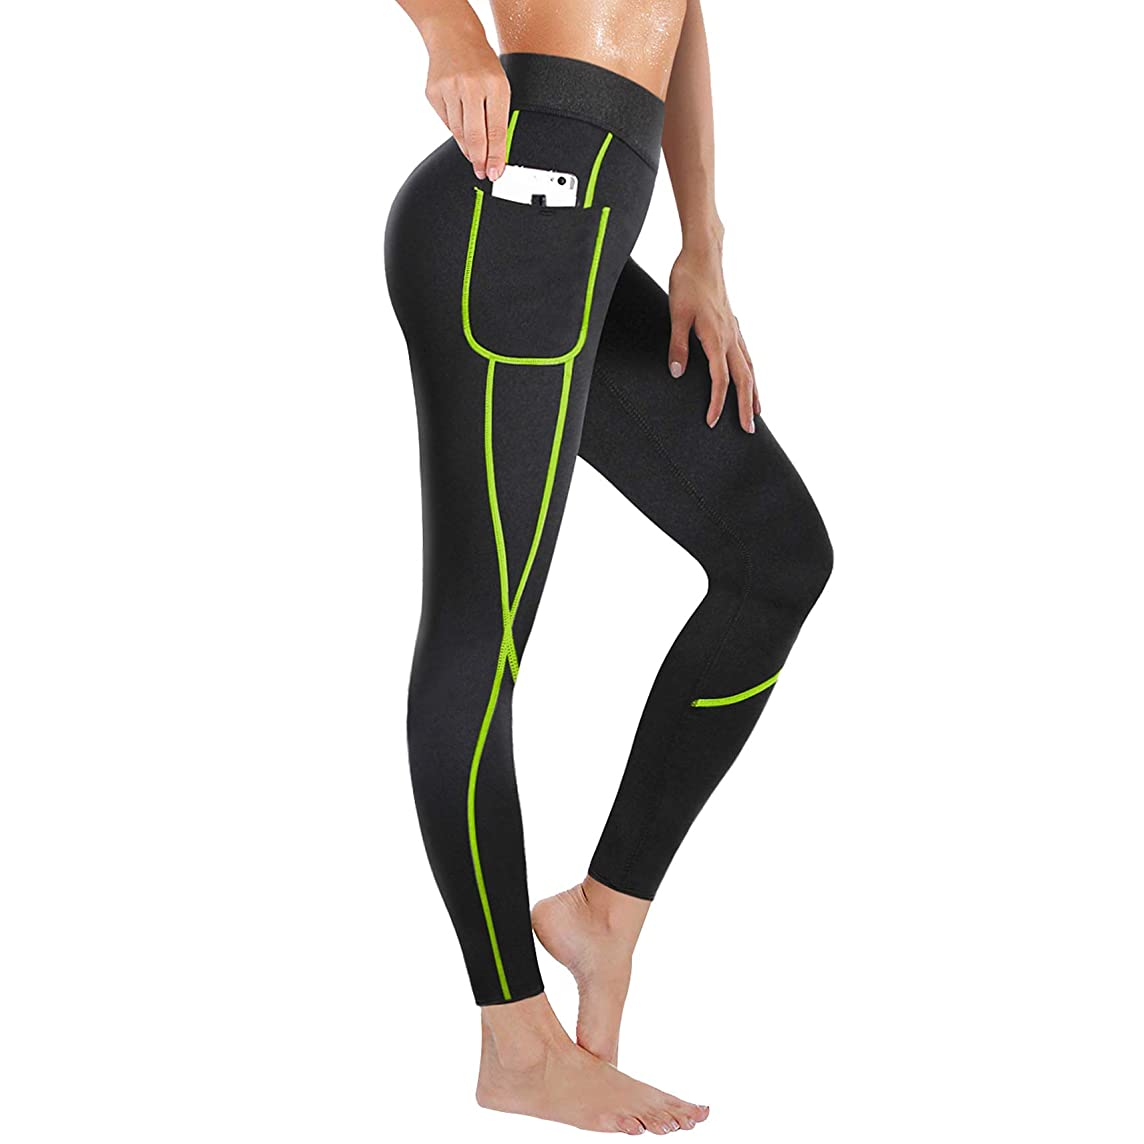 Rolewpy Women Neoprene Sauna Slimming Pants Weight Loss Hot Thermo Sweat Body Shaper Capri for Fat Burner Leggings